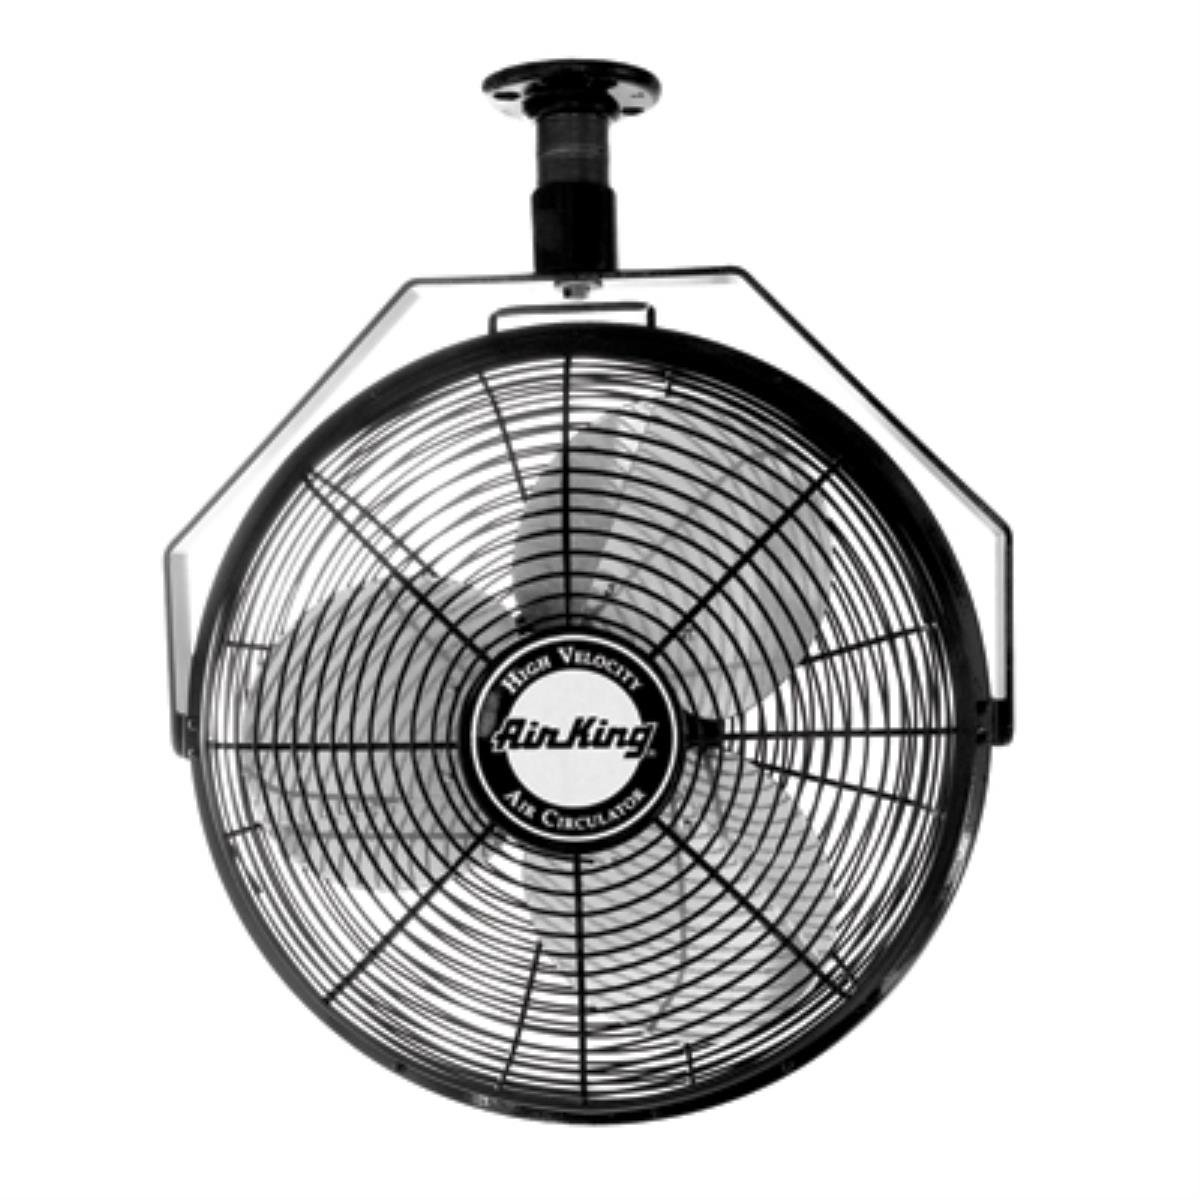 Air King 9718 18-Inch Industrial Grade Ceiling Mount Fan by Air King (Image #1)